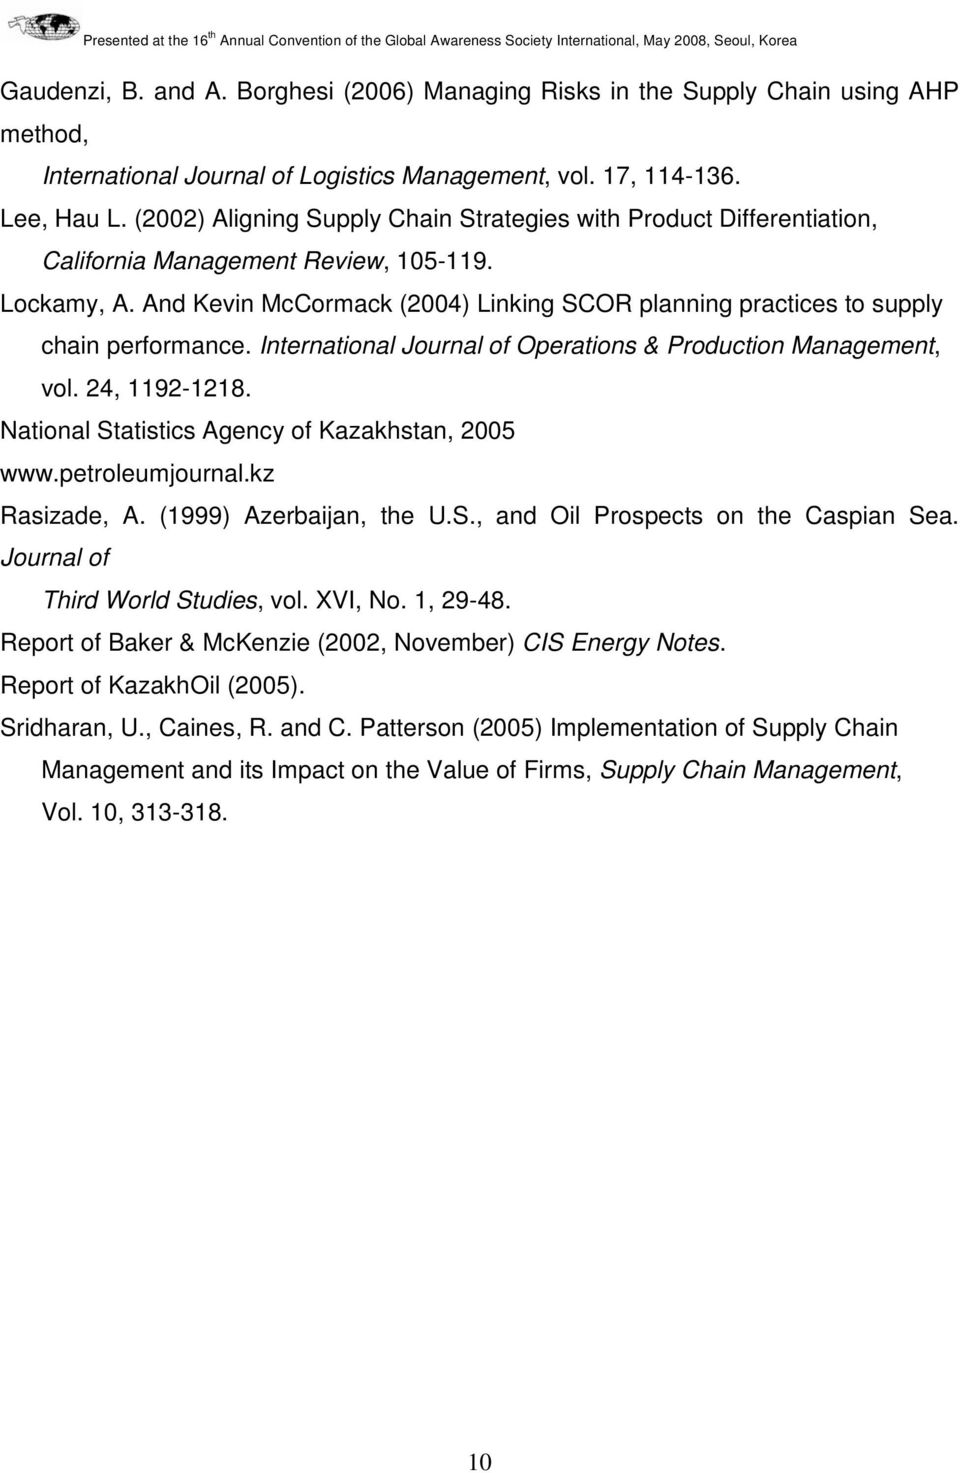 And Kevin McCormack (2004) Linking SCOR planning practices to supply chain performance. International Journal of Operations & Production Management, vol. 24, 1192-1218.